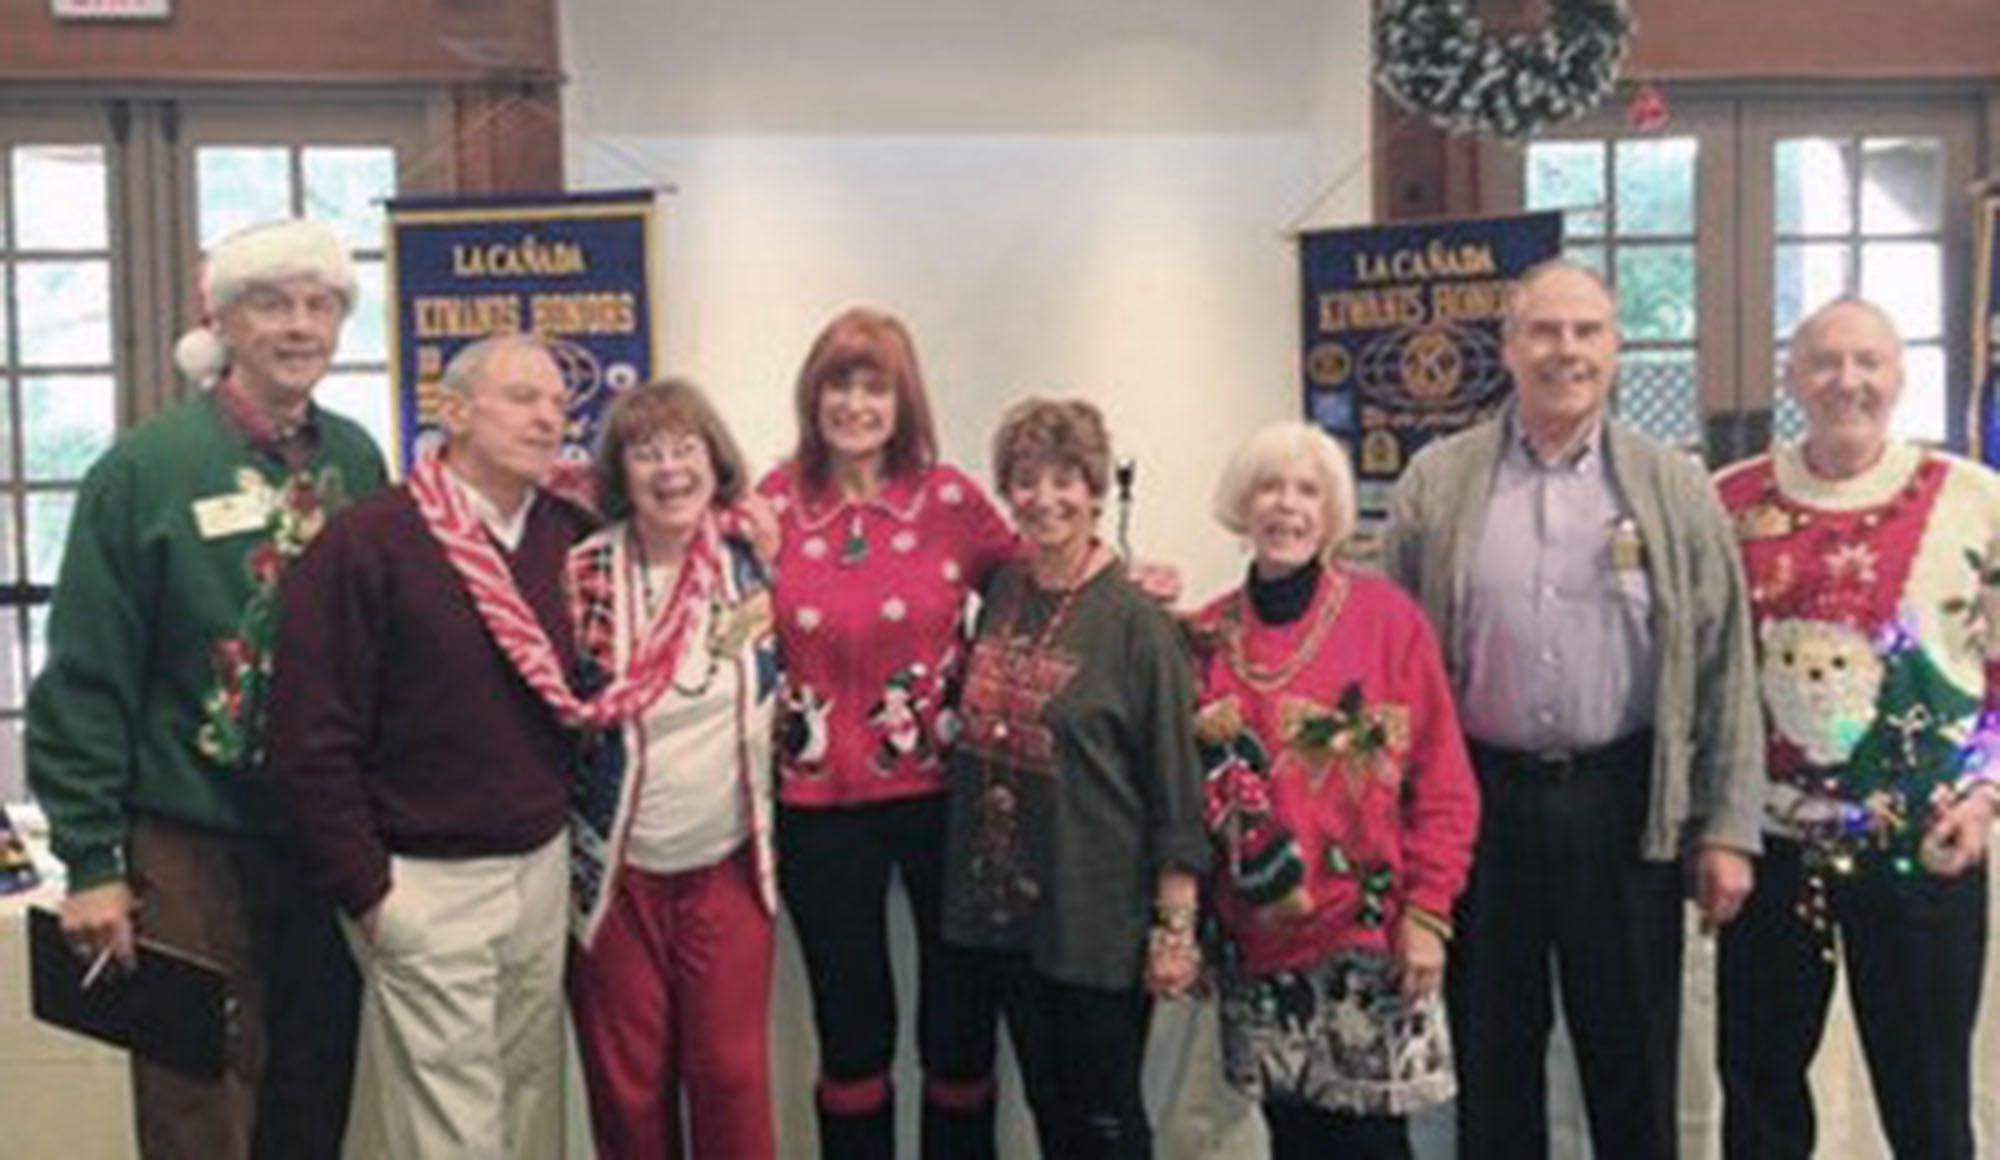 "Kiwanis members show off the ""ugly holiday sweaters"" they wear as part of their annual holiday tradition. From left to right: Kiwanis President Tom Passansi, Bill Koury, Eille Weldemuth, Diane Della Valle, Linda Magarian, Mary Gant, Rev. Skip Linderman, and the winner, Daryal Gant."